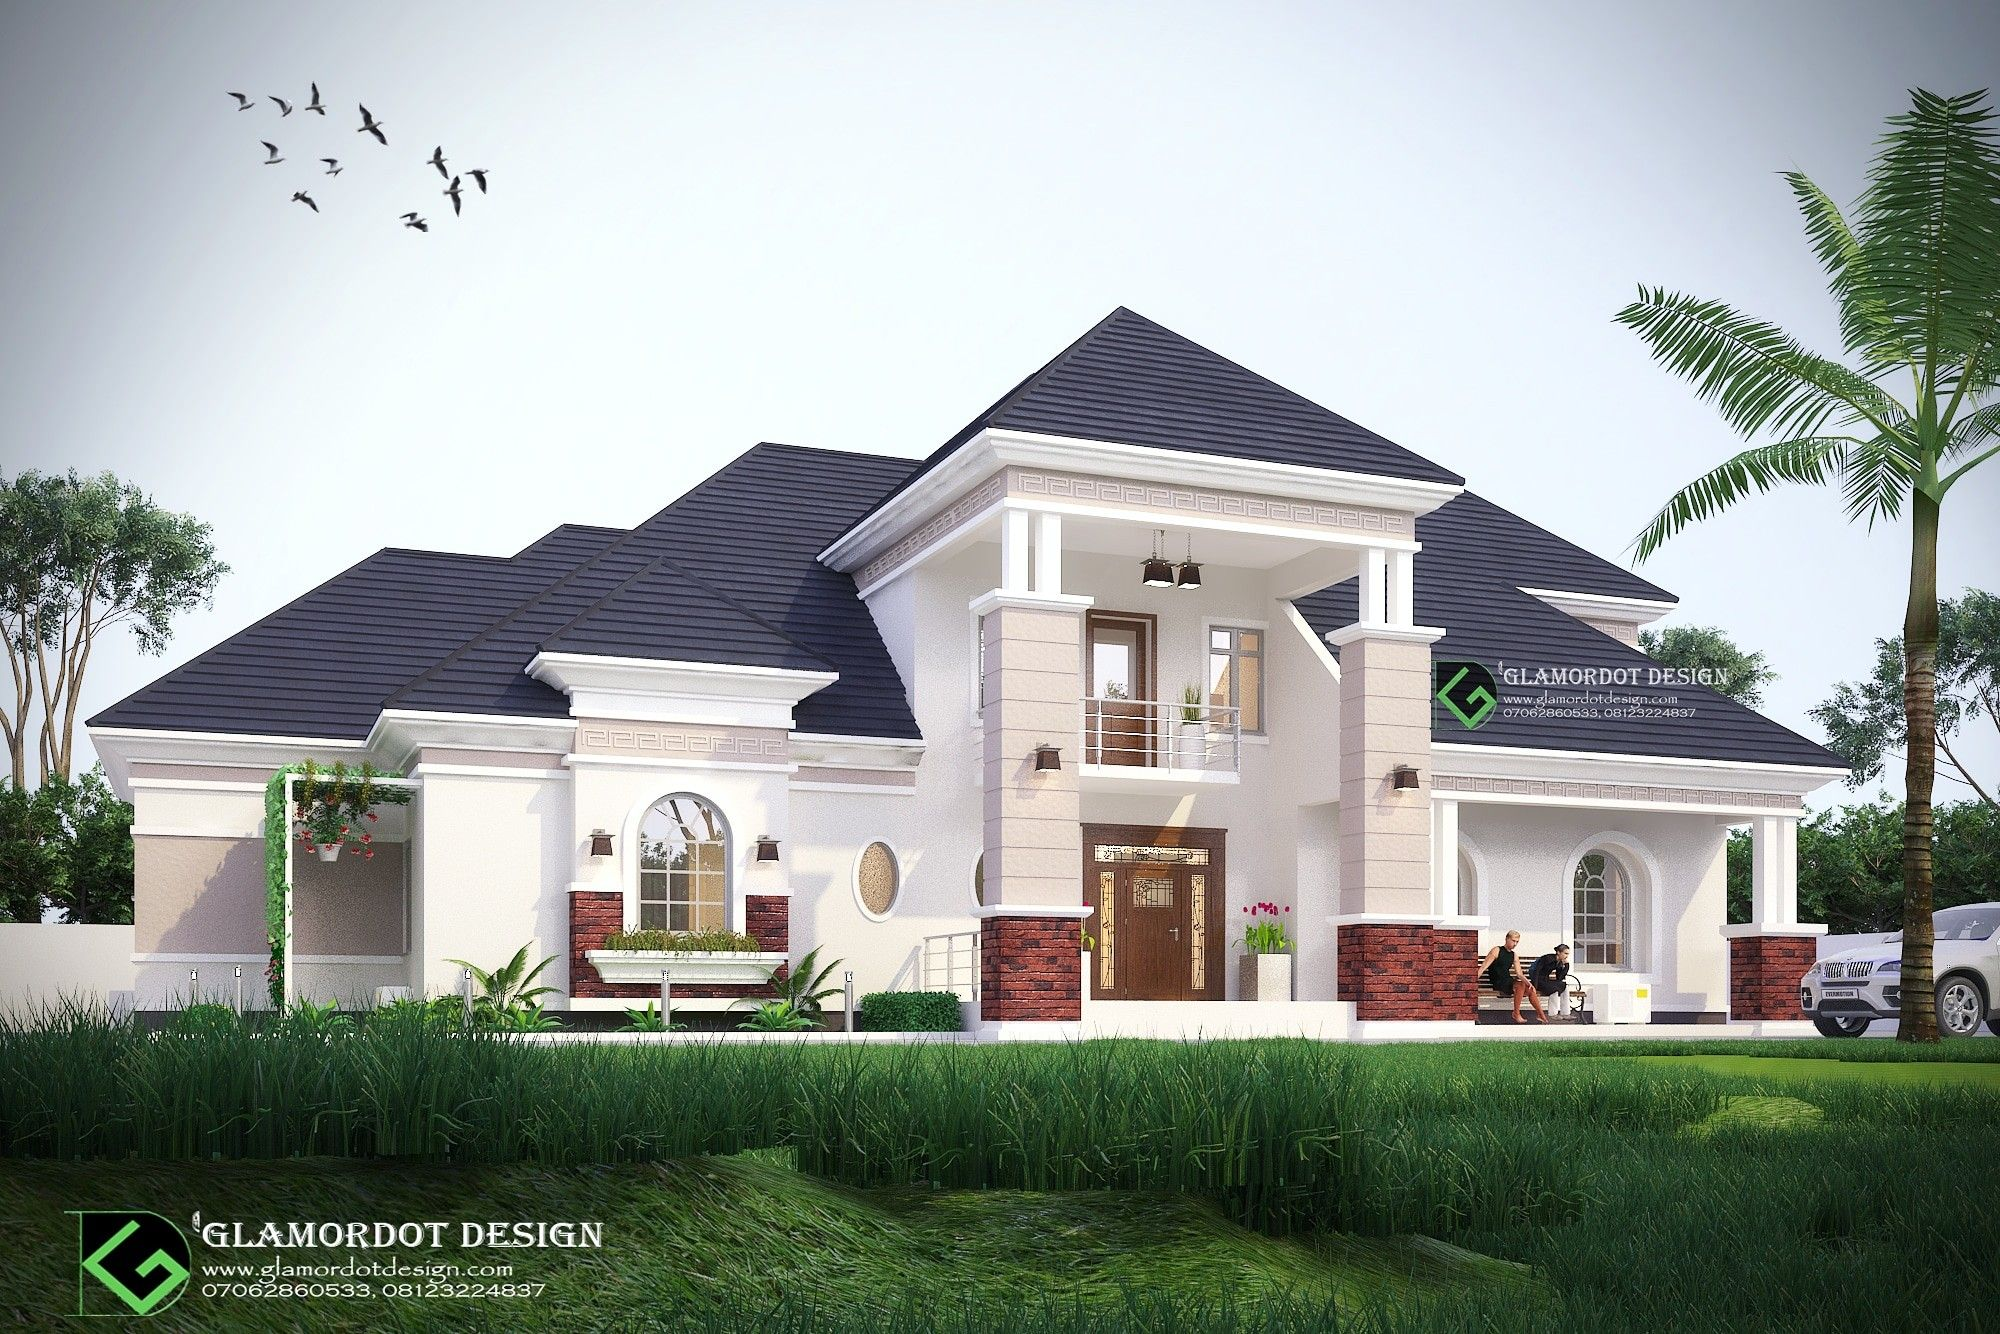 Modified Architectural Design Of A Proposed 5 Bedroom Bungalow